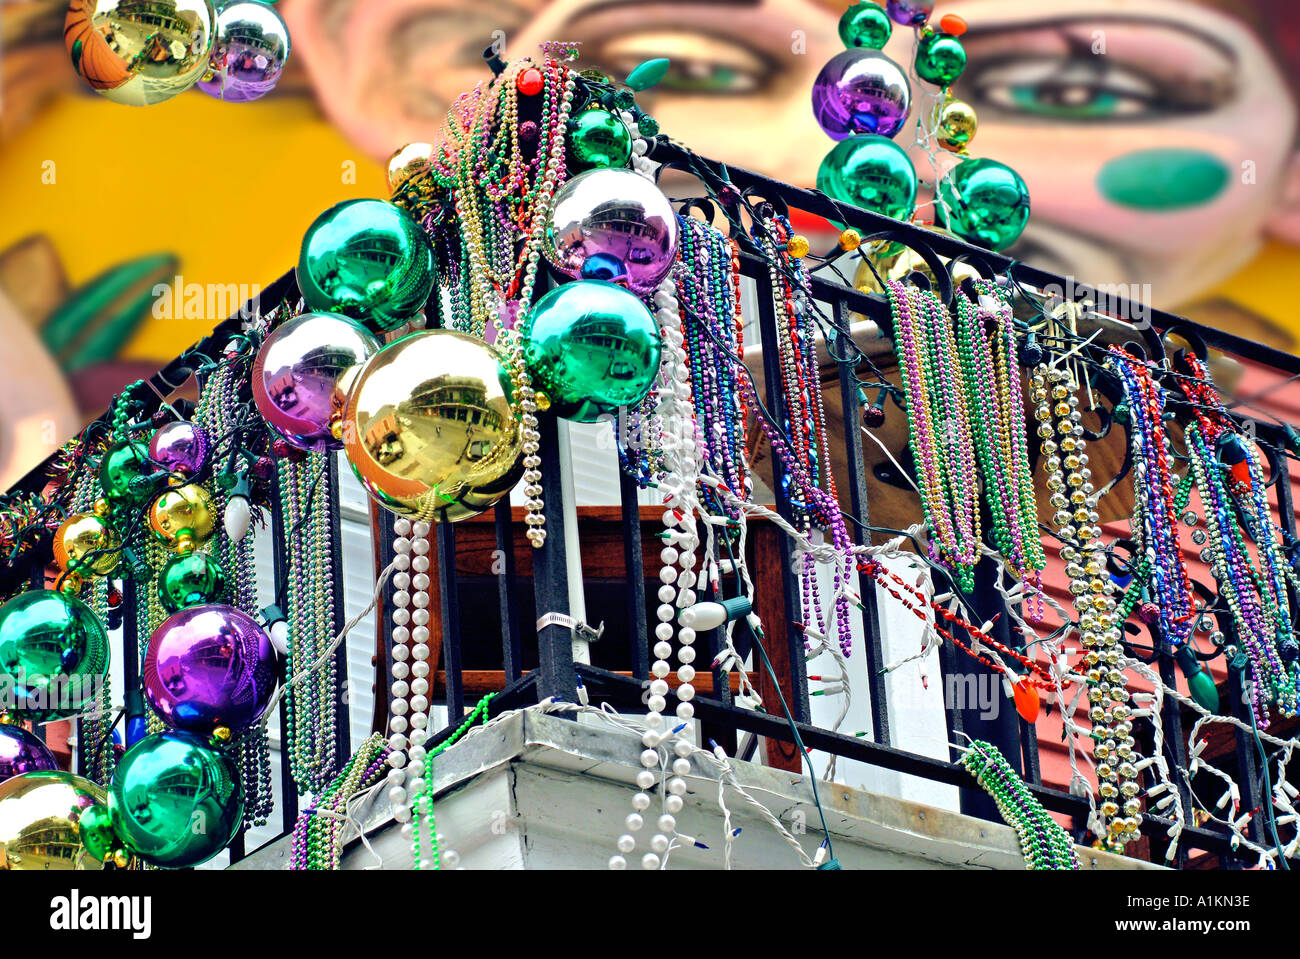 Mardi Gras Decorations On Balcony In New Orleans Stock Photo